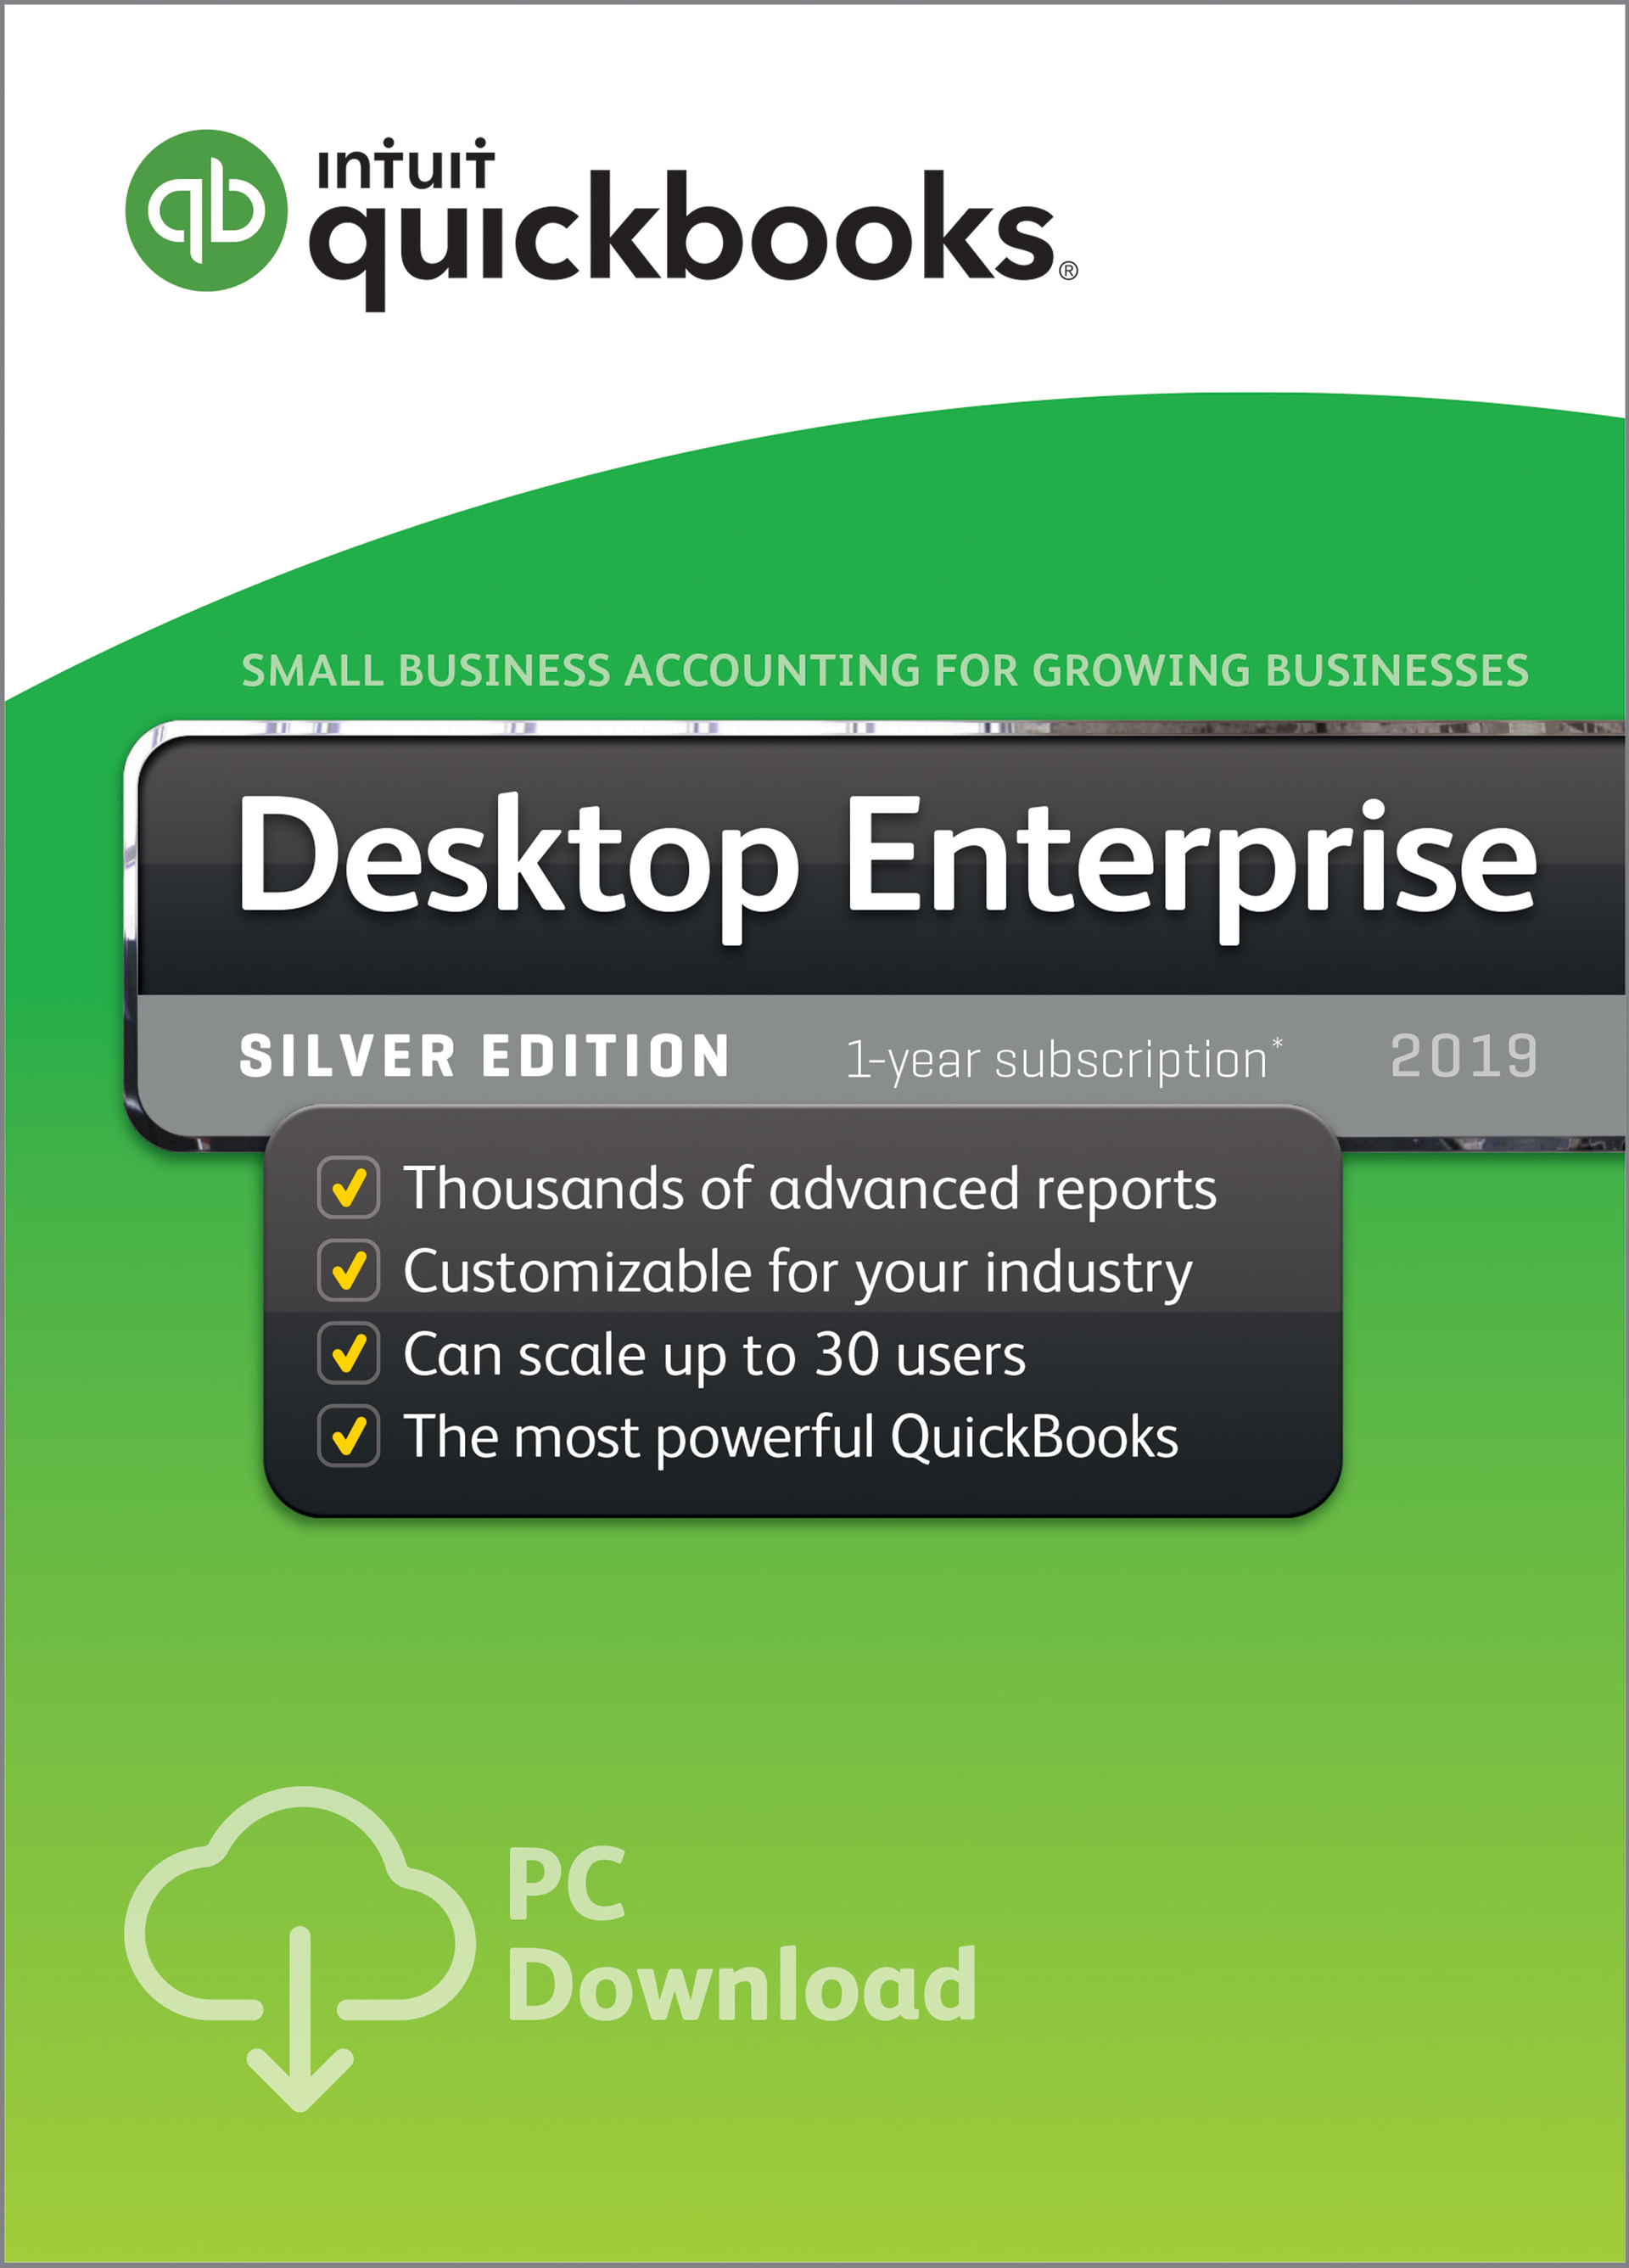 QuickBooks Desktop Enterprise 2019 gives you the tools and confidence to  grow your business.